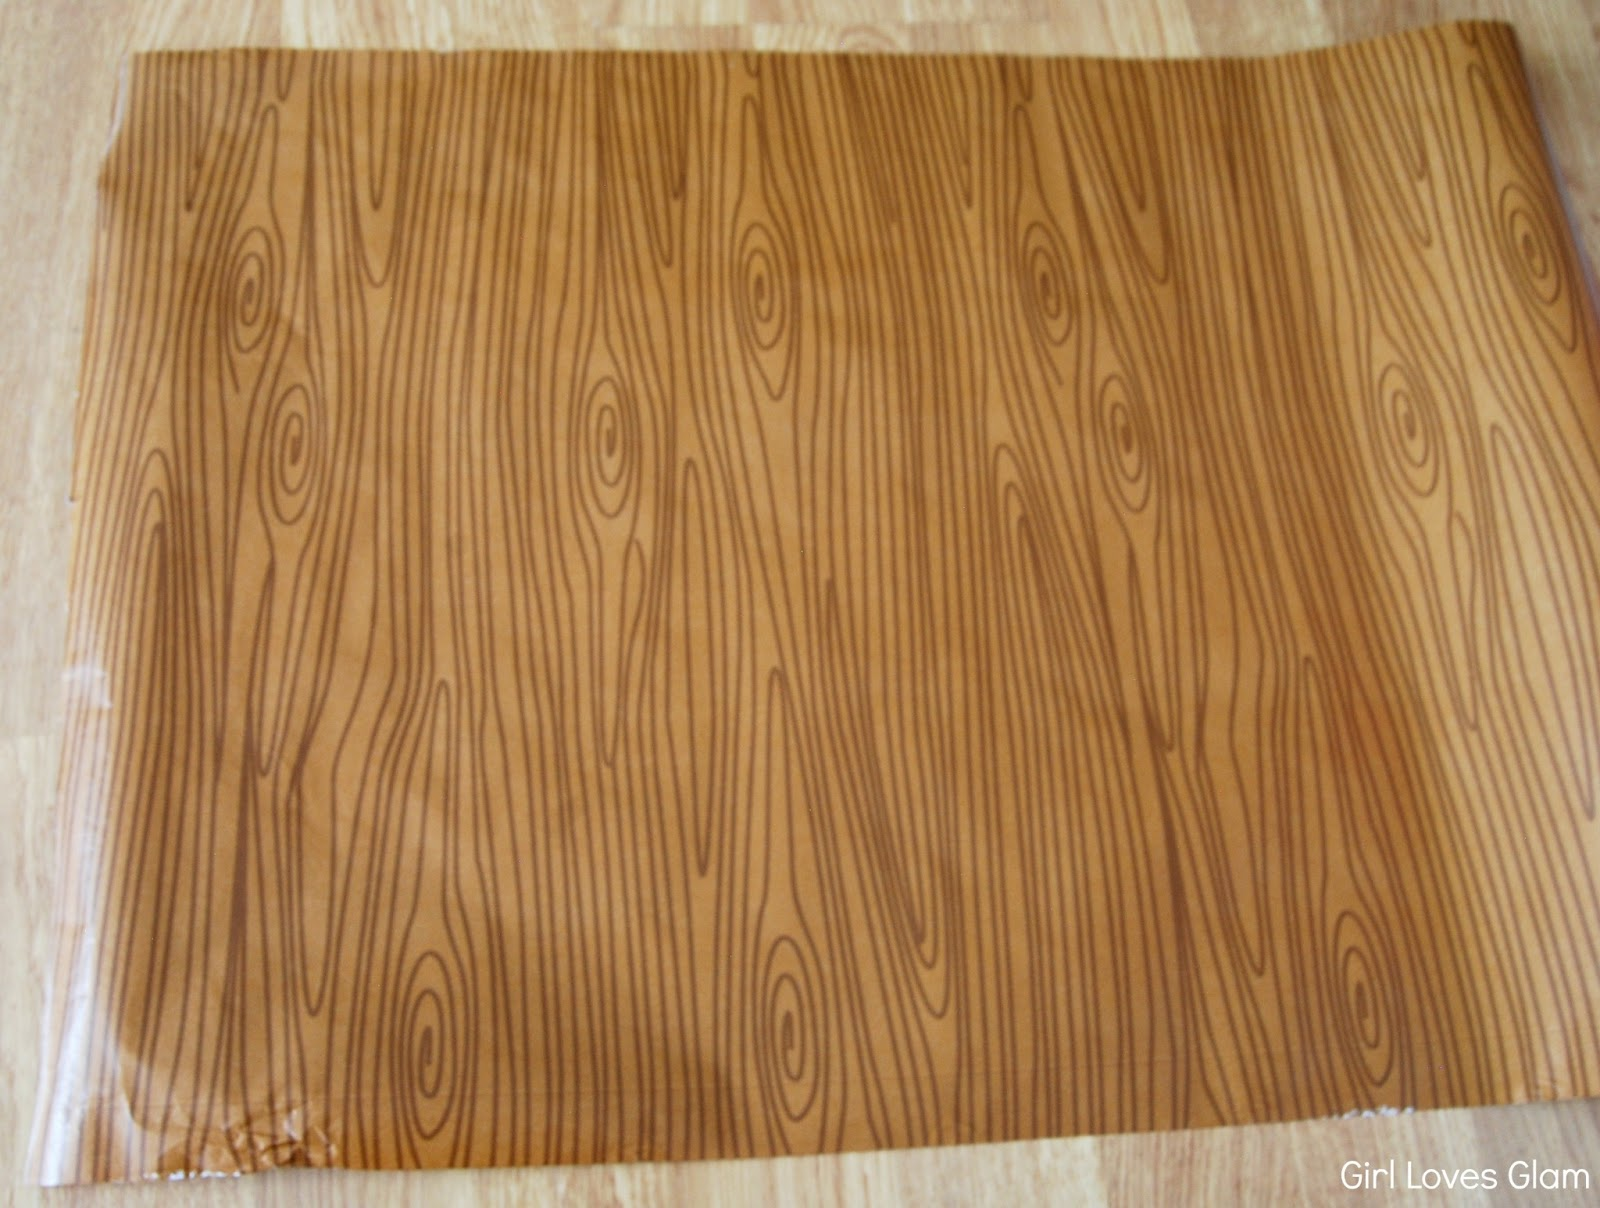 wood wrapping paper Product features is easy to cut and apply with measure-and-cut grid on the backing paper.